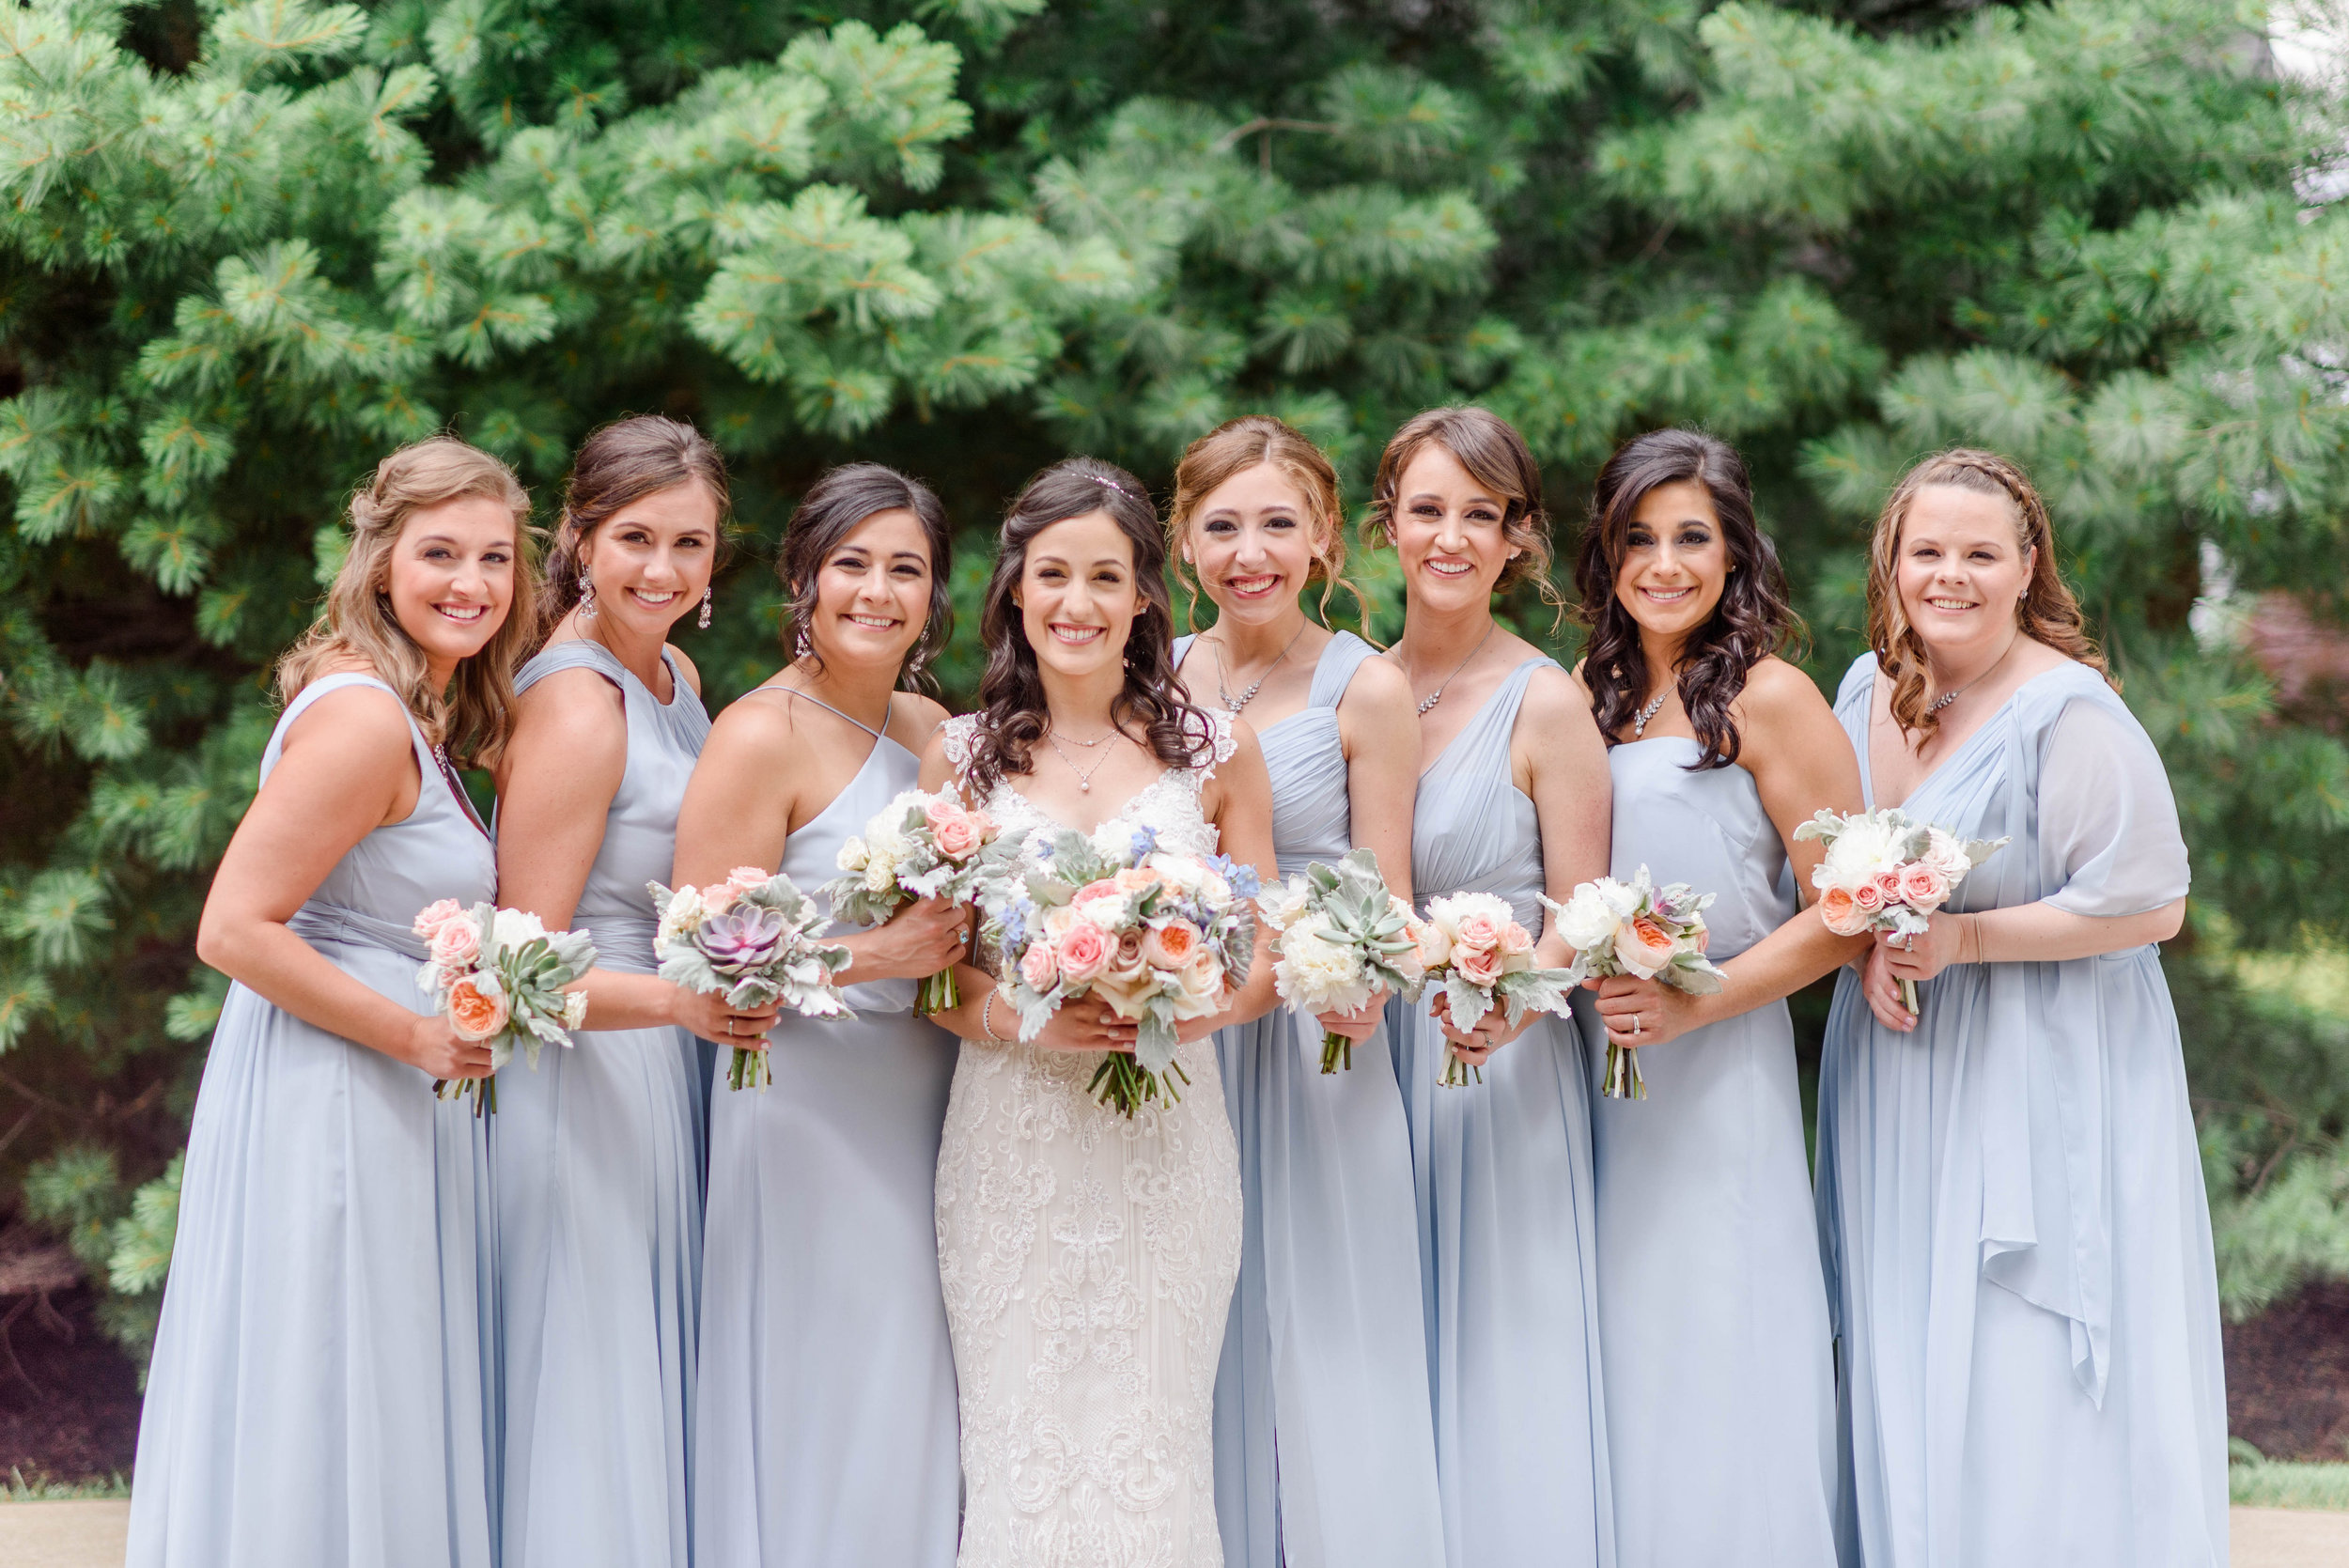 Bridesmaids dress in dusty blue holding wedding bouquets for elegant Greek wedding held in Pittsburgh at Oakmont Country Club. See more details at exhale-events.com!